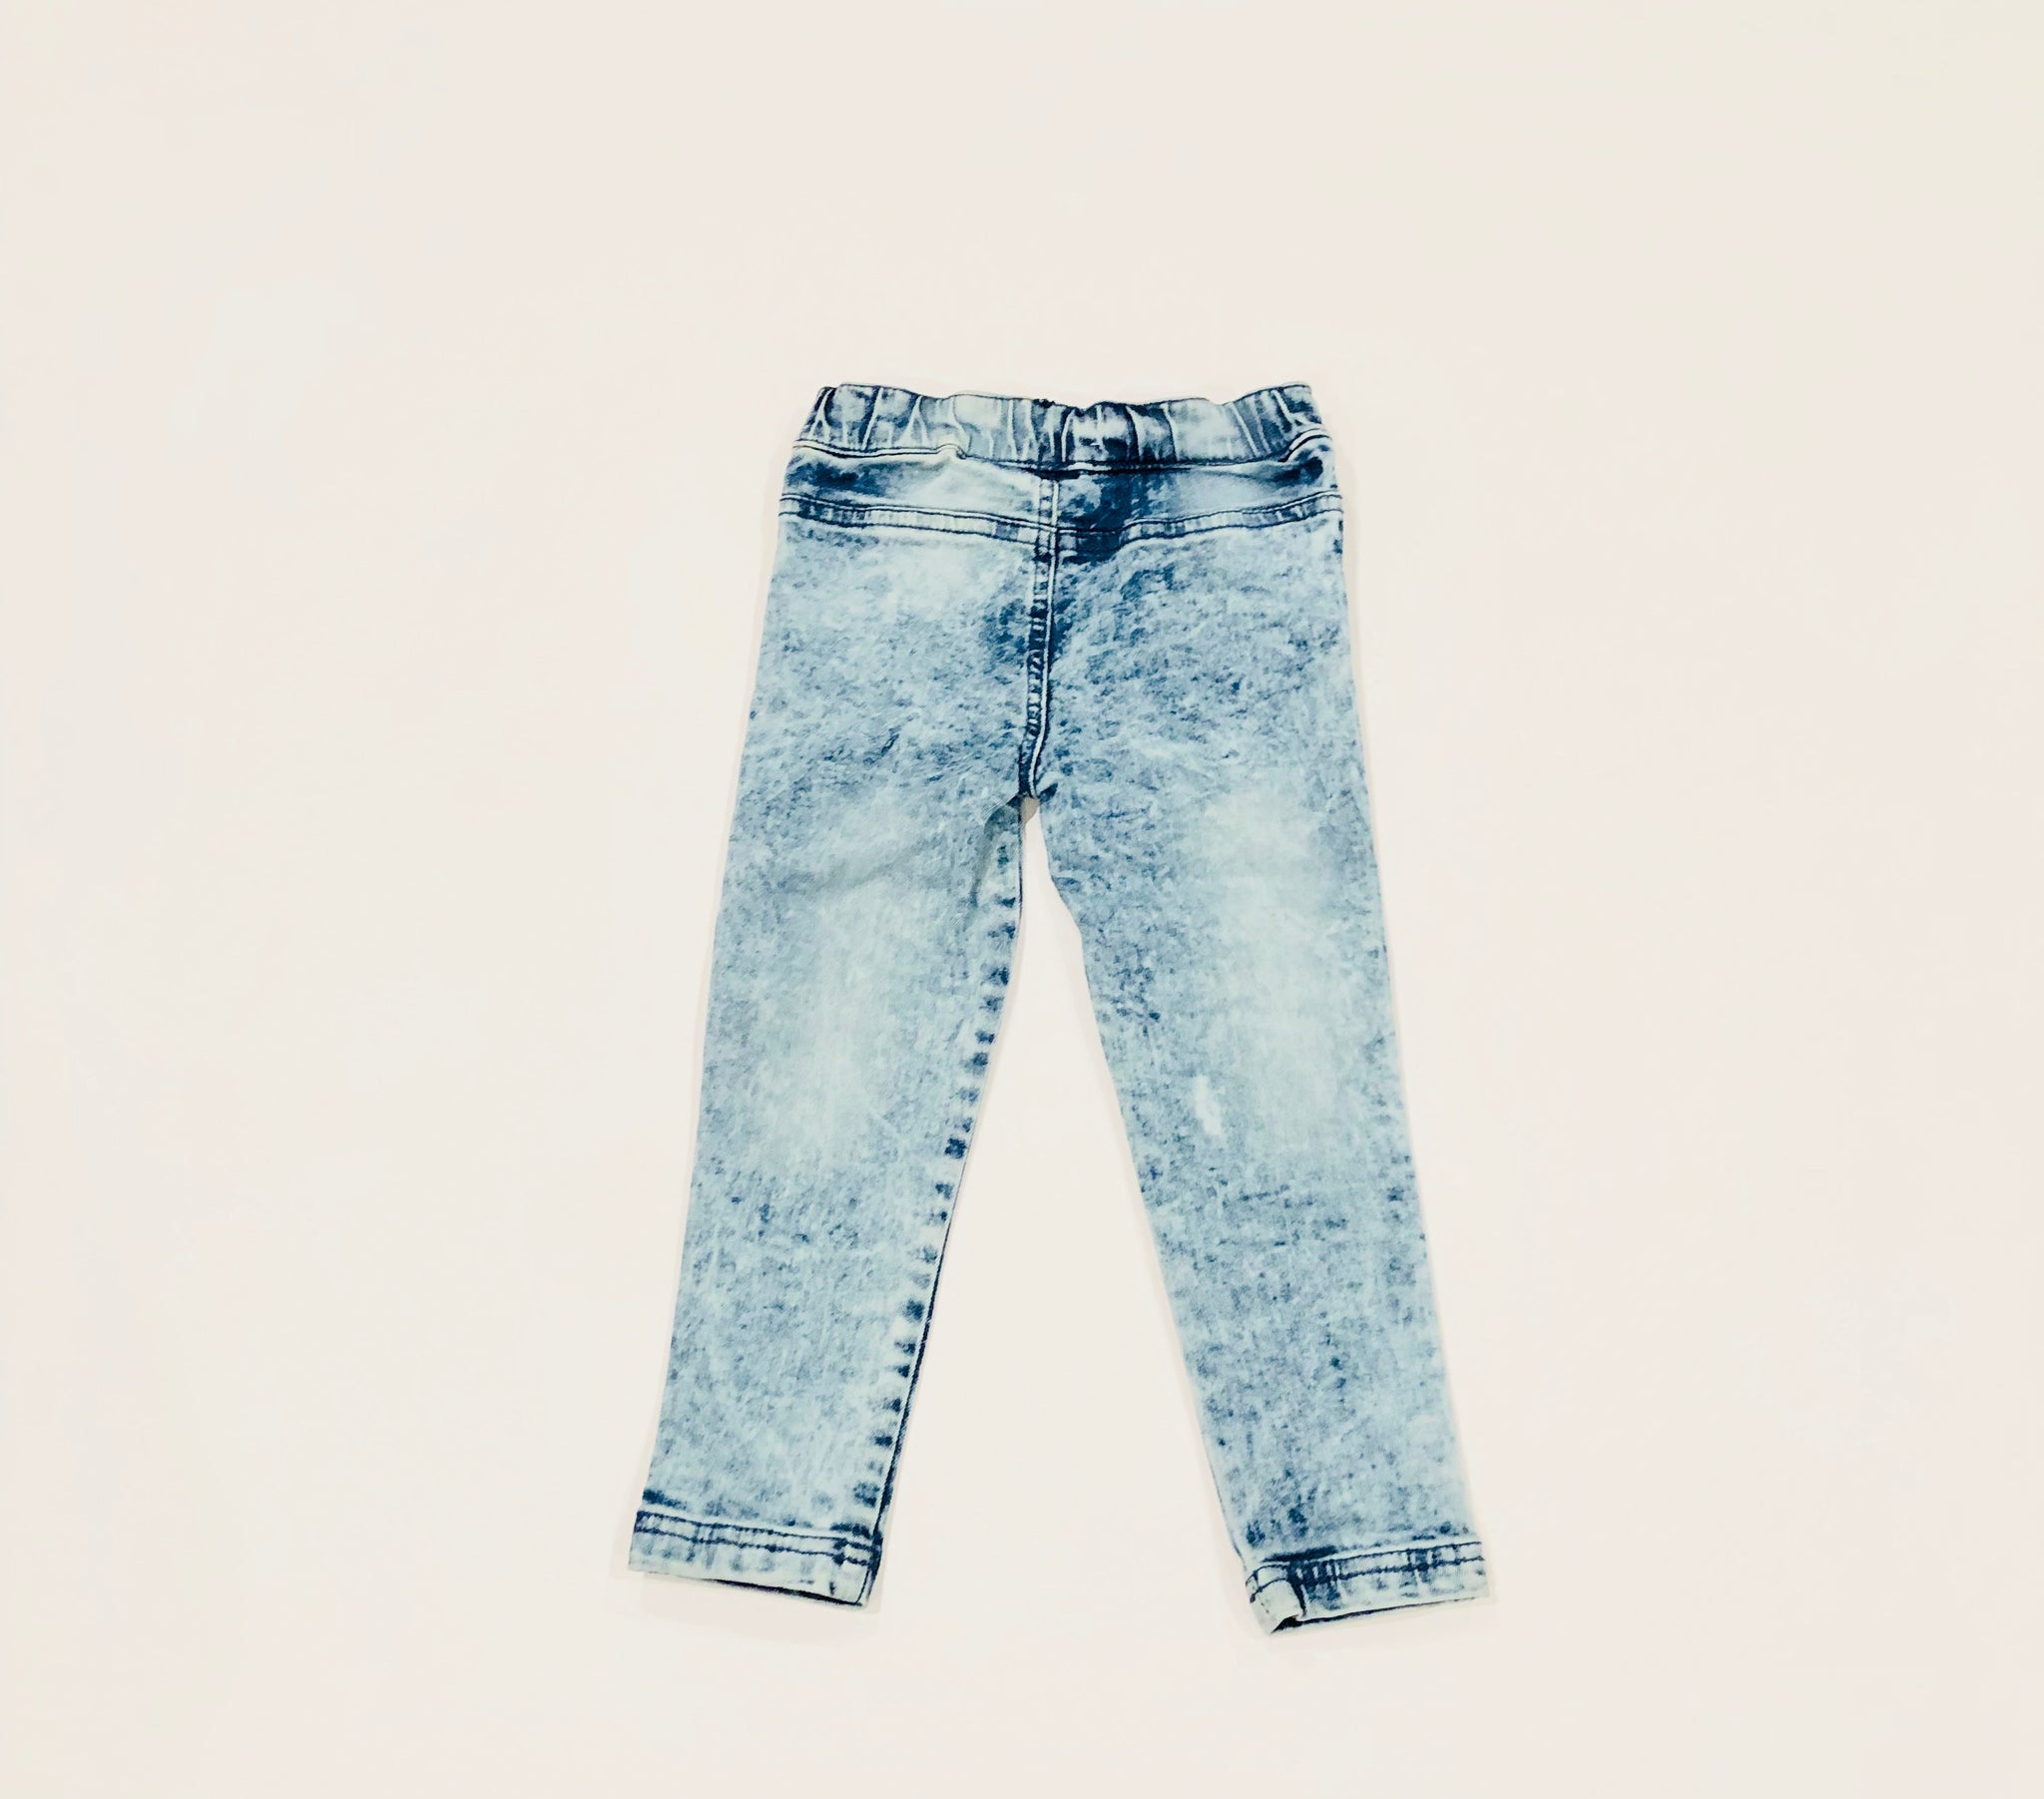 jean legging  |  washed out